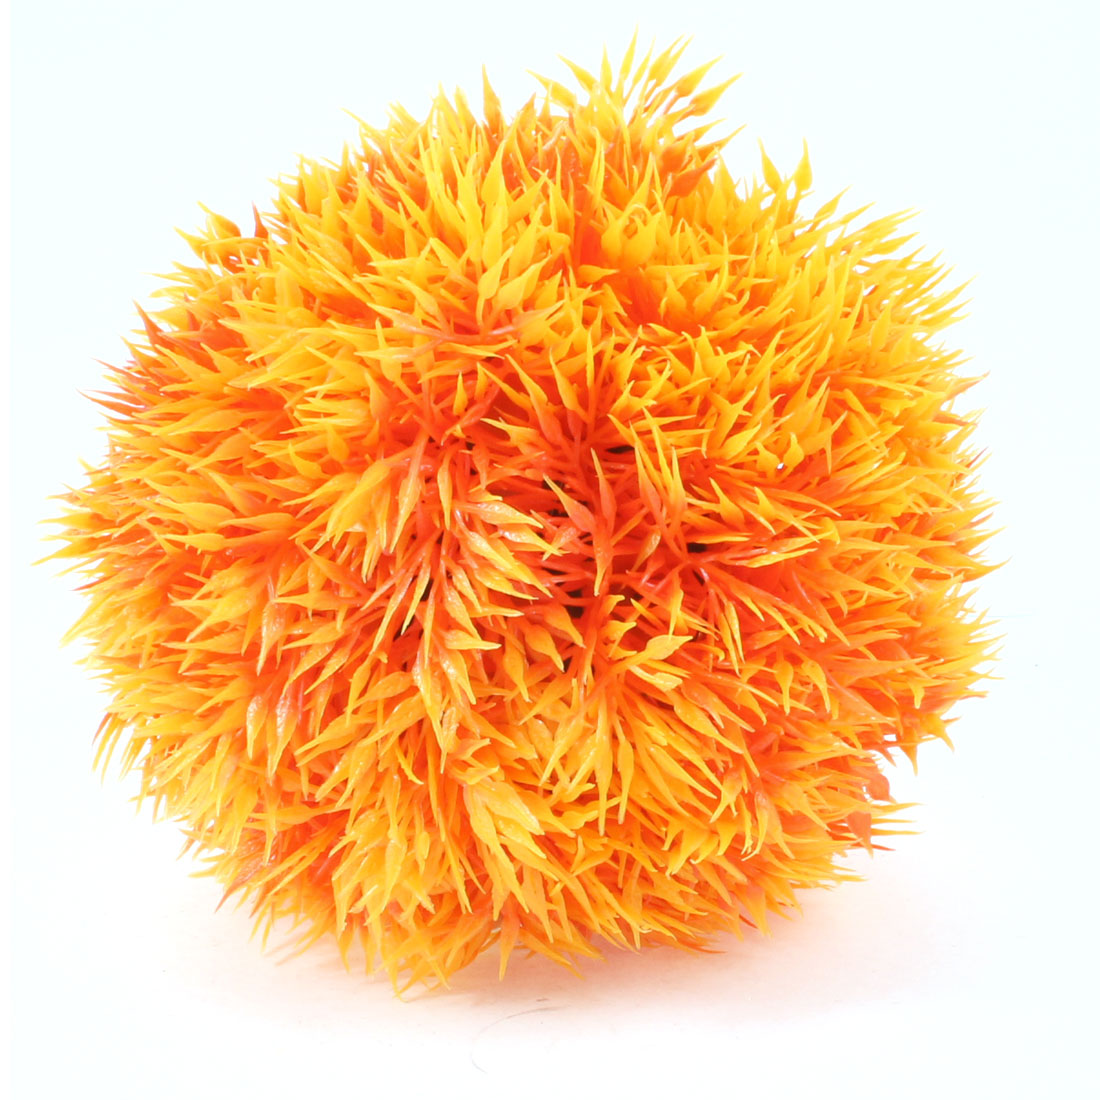 Aquarium Ball Shape Plastic Underwater Plant Ornament Dark Yellow w Oval Base